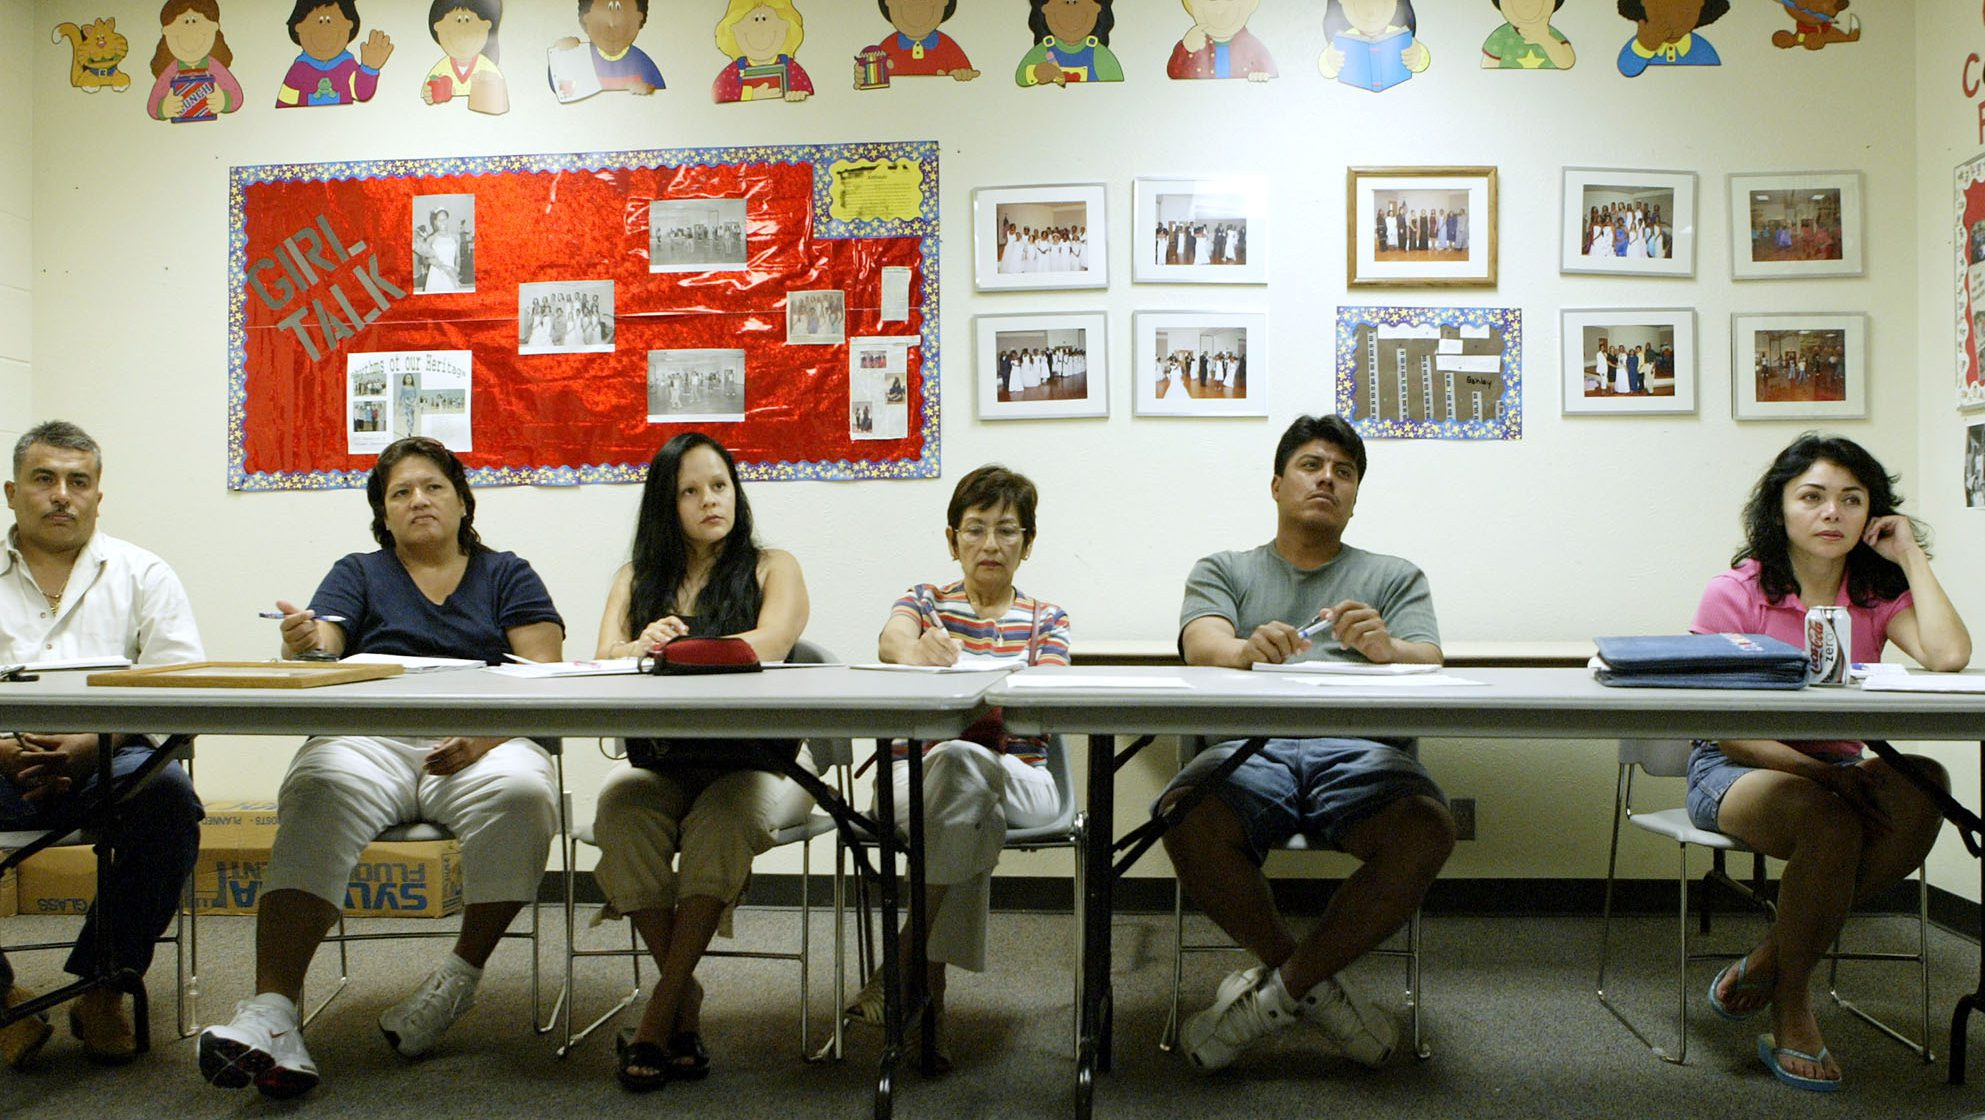 Students attend an English as a Second Language or ESL class at the Douglas Community Center June 8, 2006, in Plano, Texas. The Dallas suburbs of Plano, Irving, Carrollton and Farmers Branch along with other Texas cities have reported putting people on wait lists for ESL classes. Programs all over the country face the same.